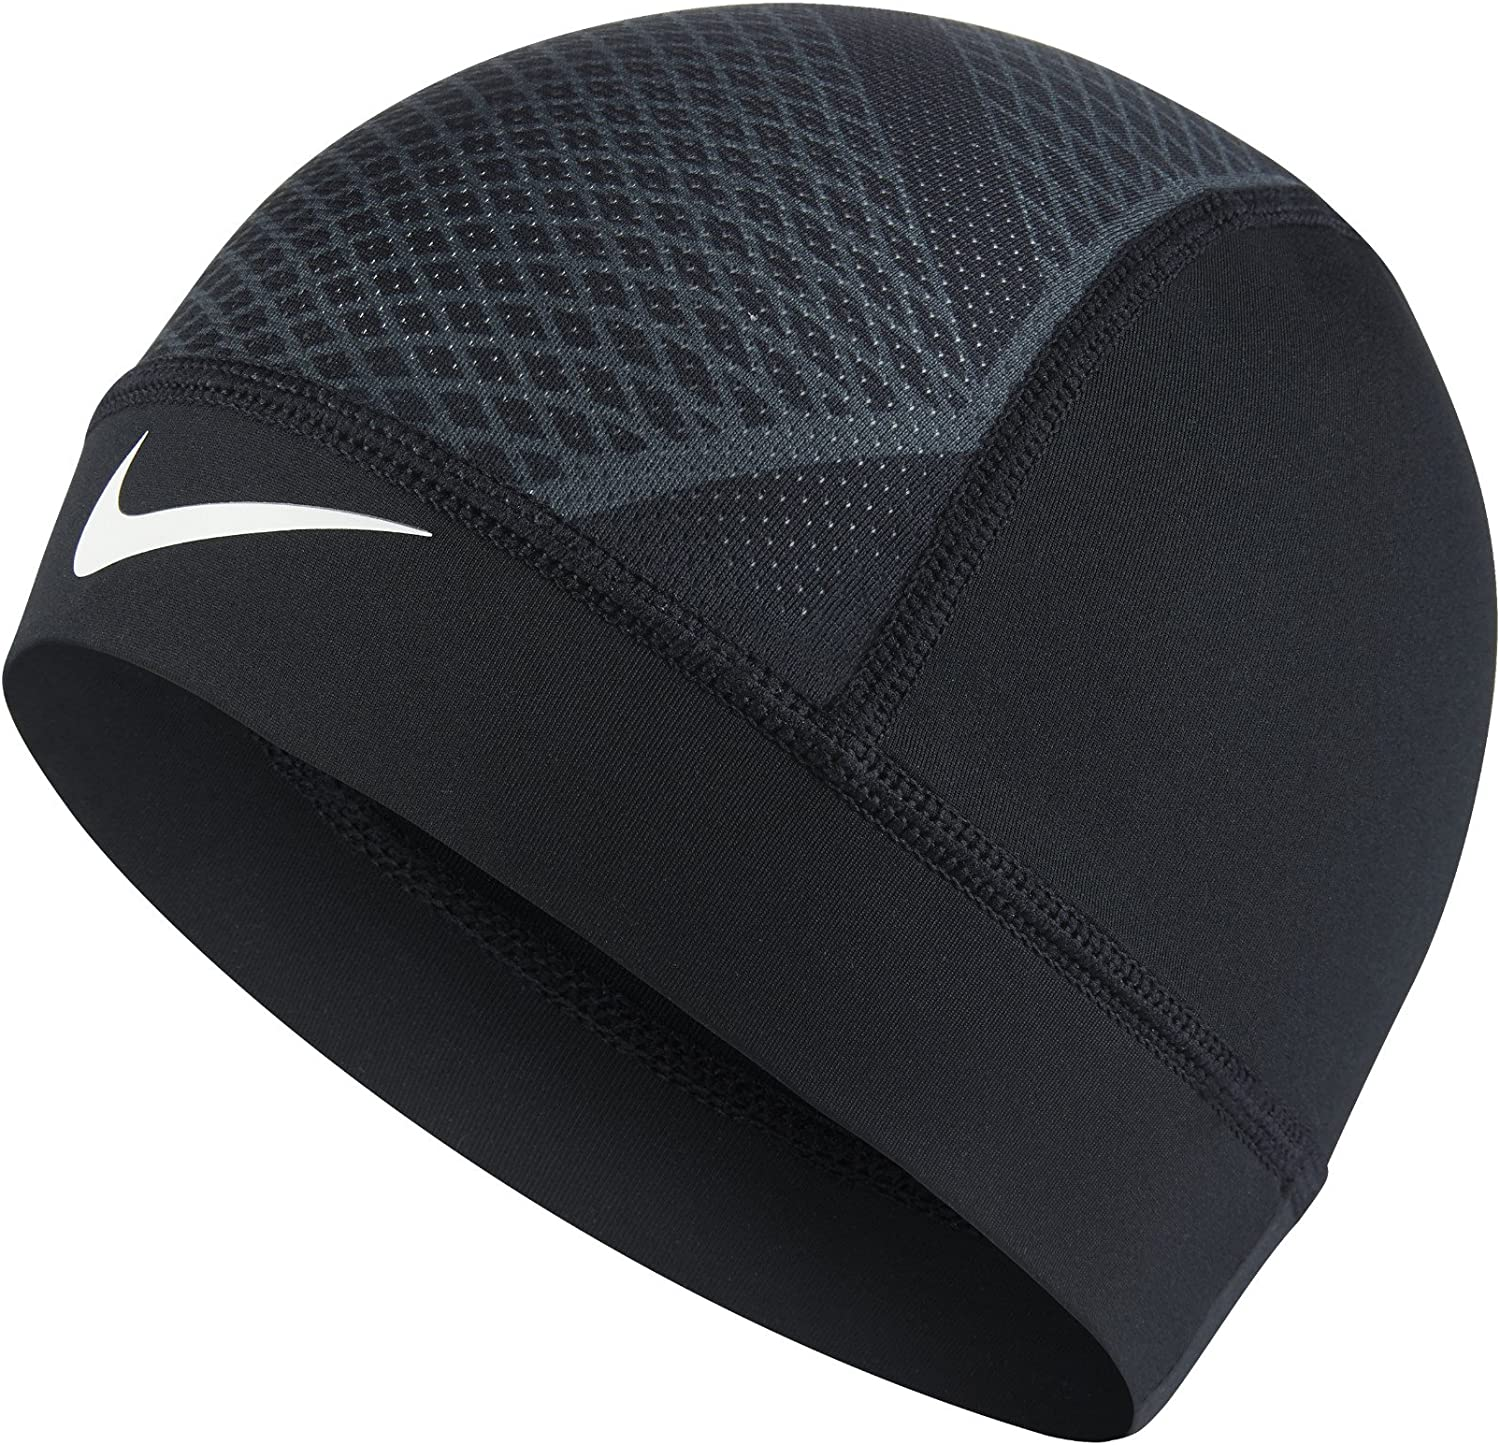 The Nike Pro Hypercool Vapor 4.0 Skull Cap is made with sweat-wicking stretch fabric and mesh panels to help keep you dry and cool.: Clothing